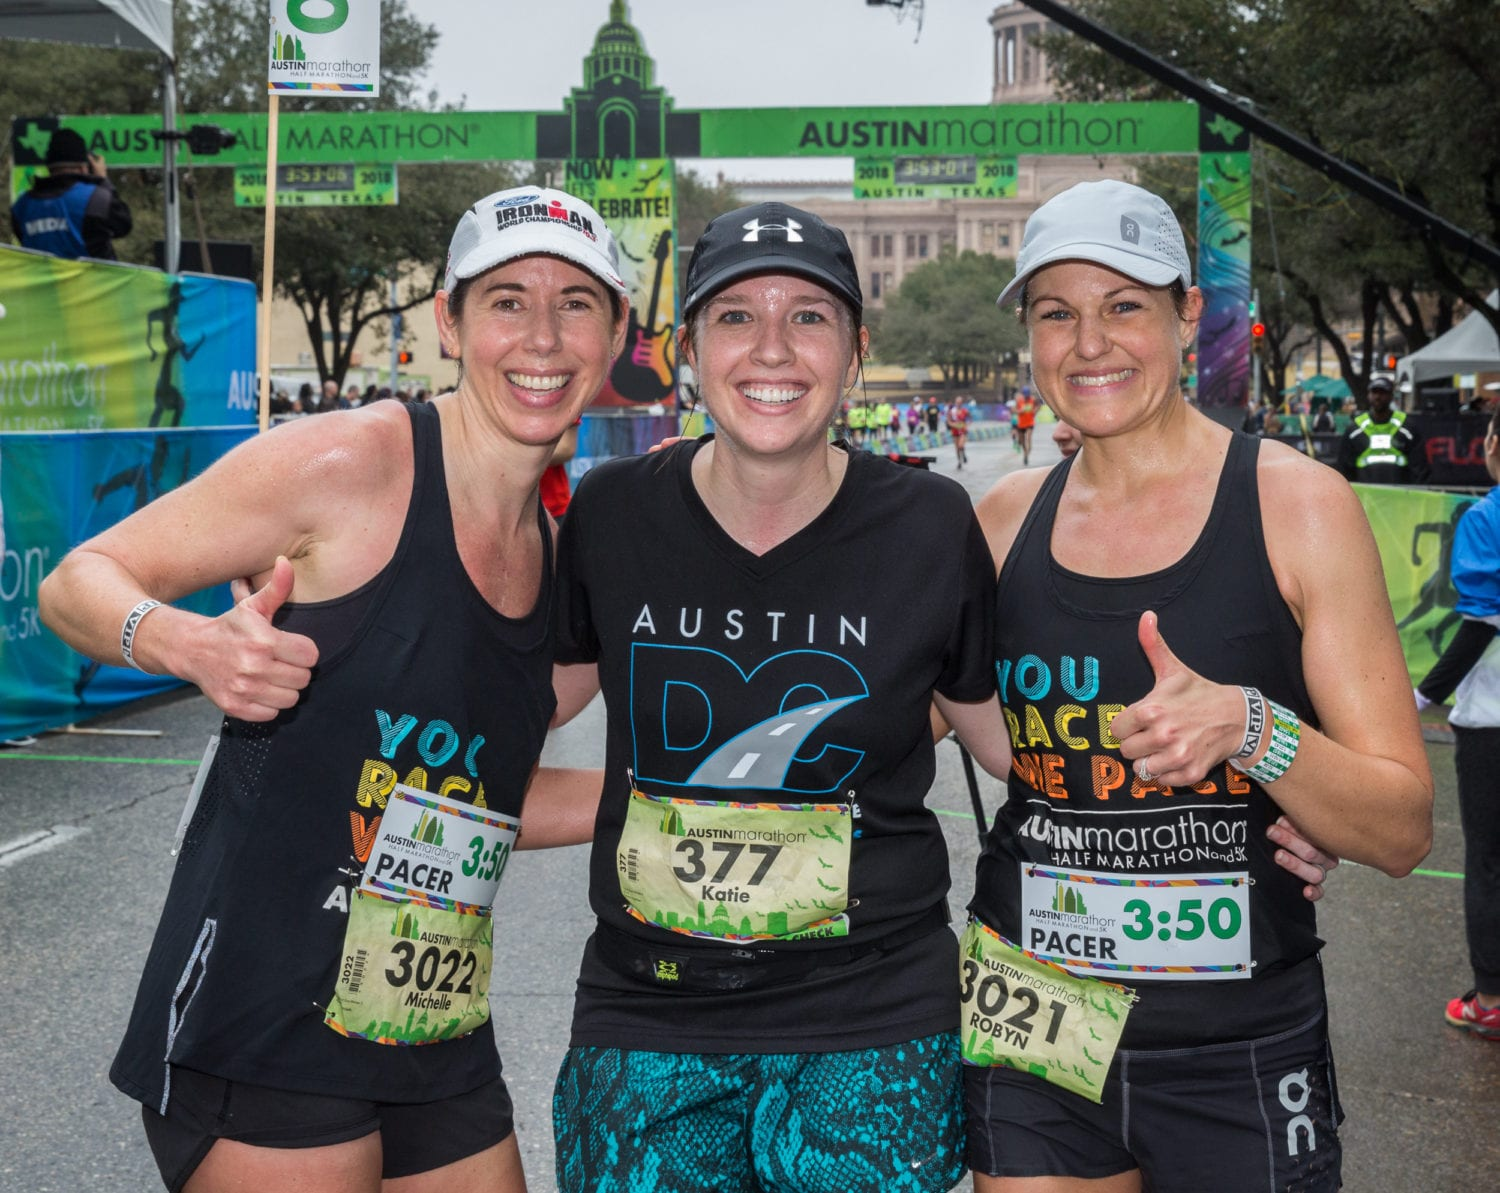 professional pacers: perks of the 2019 Austin Marathon